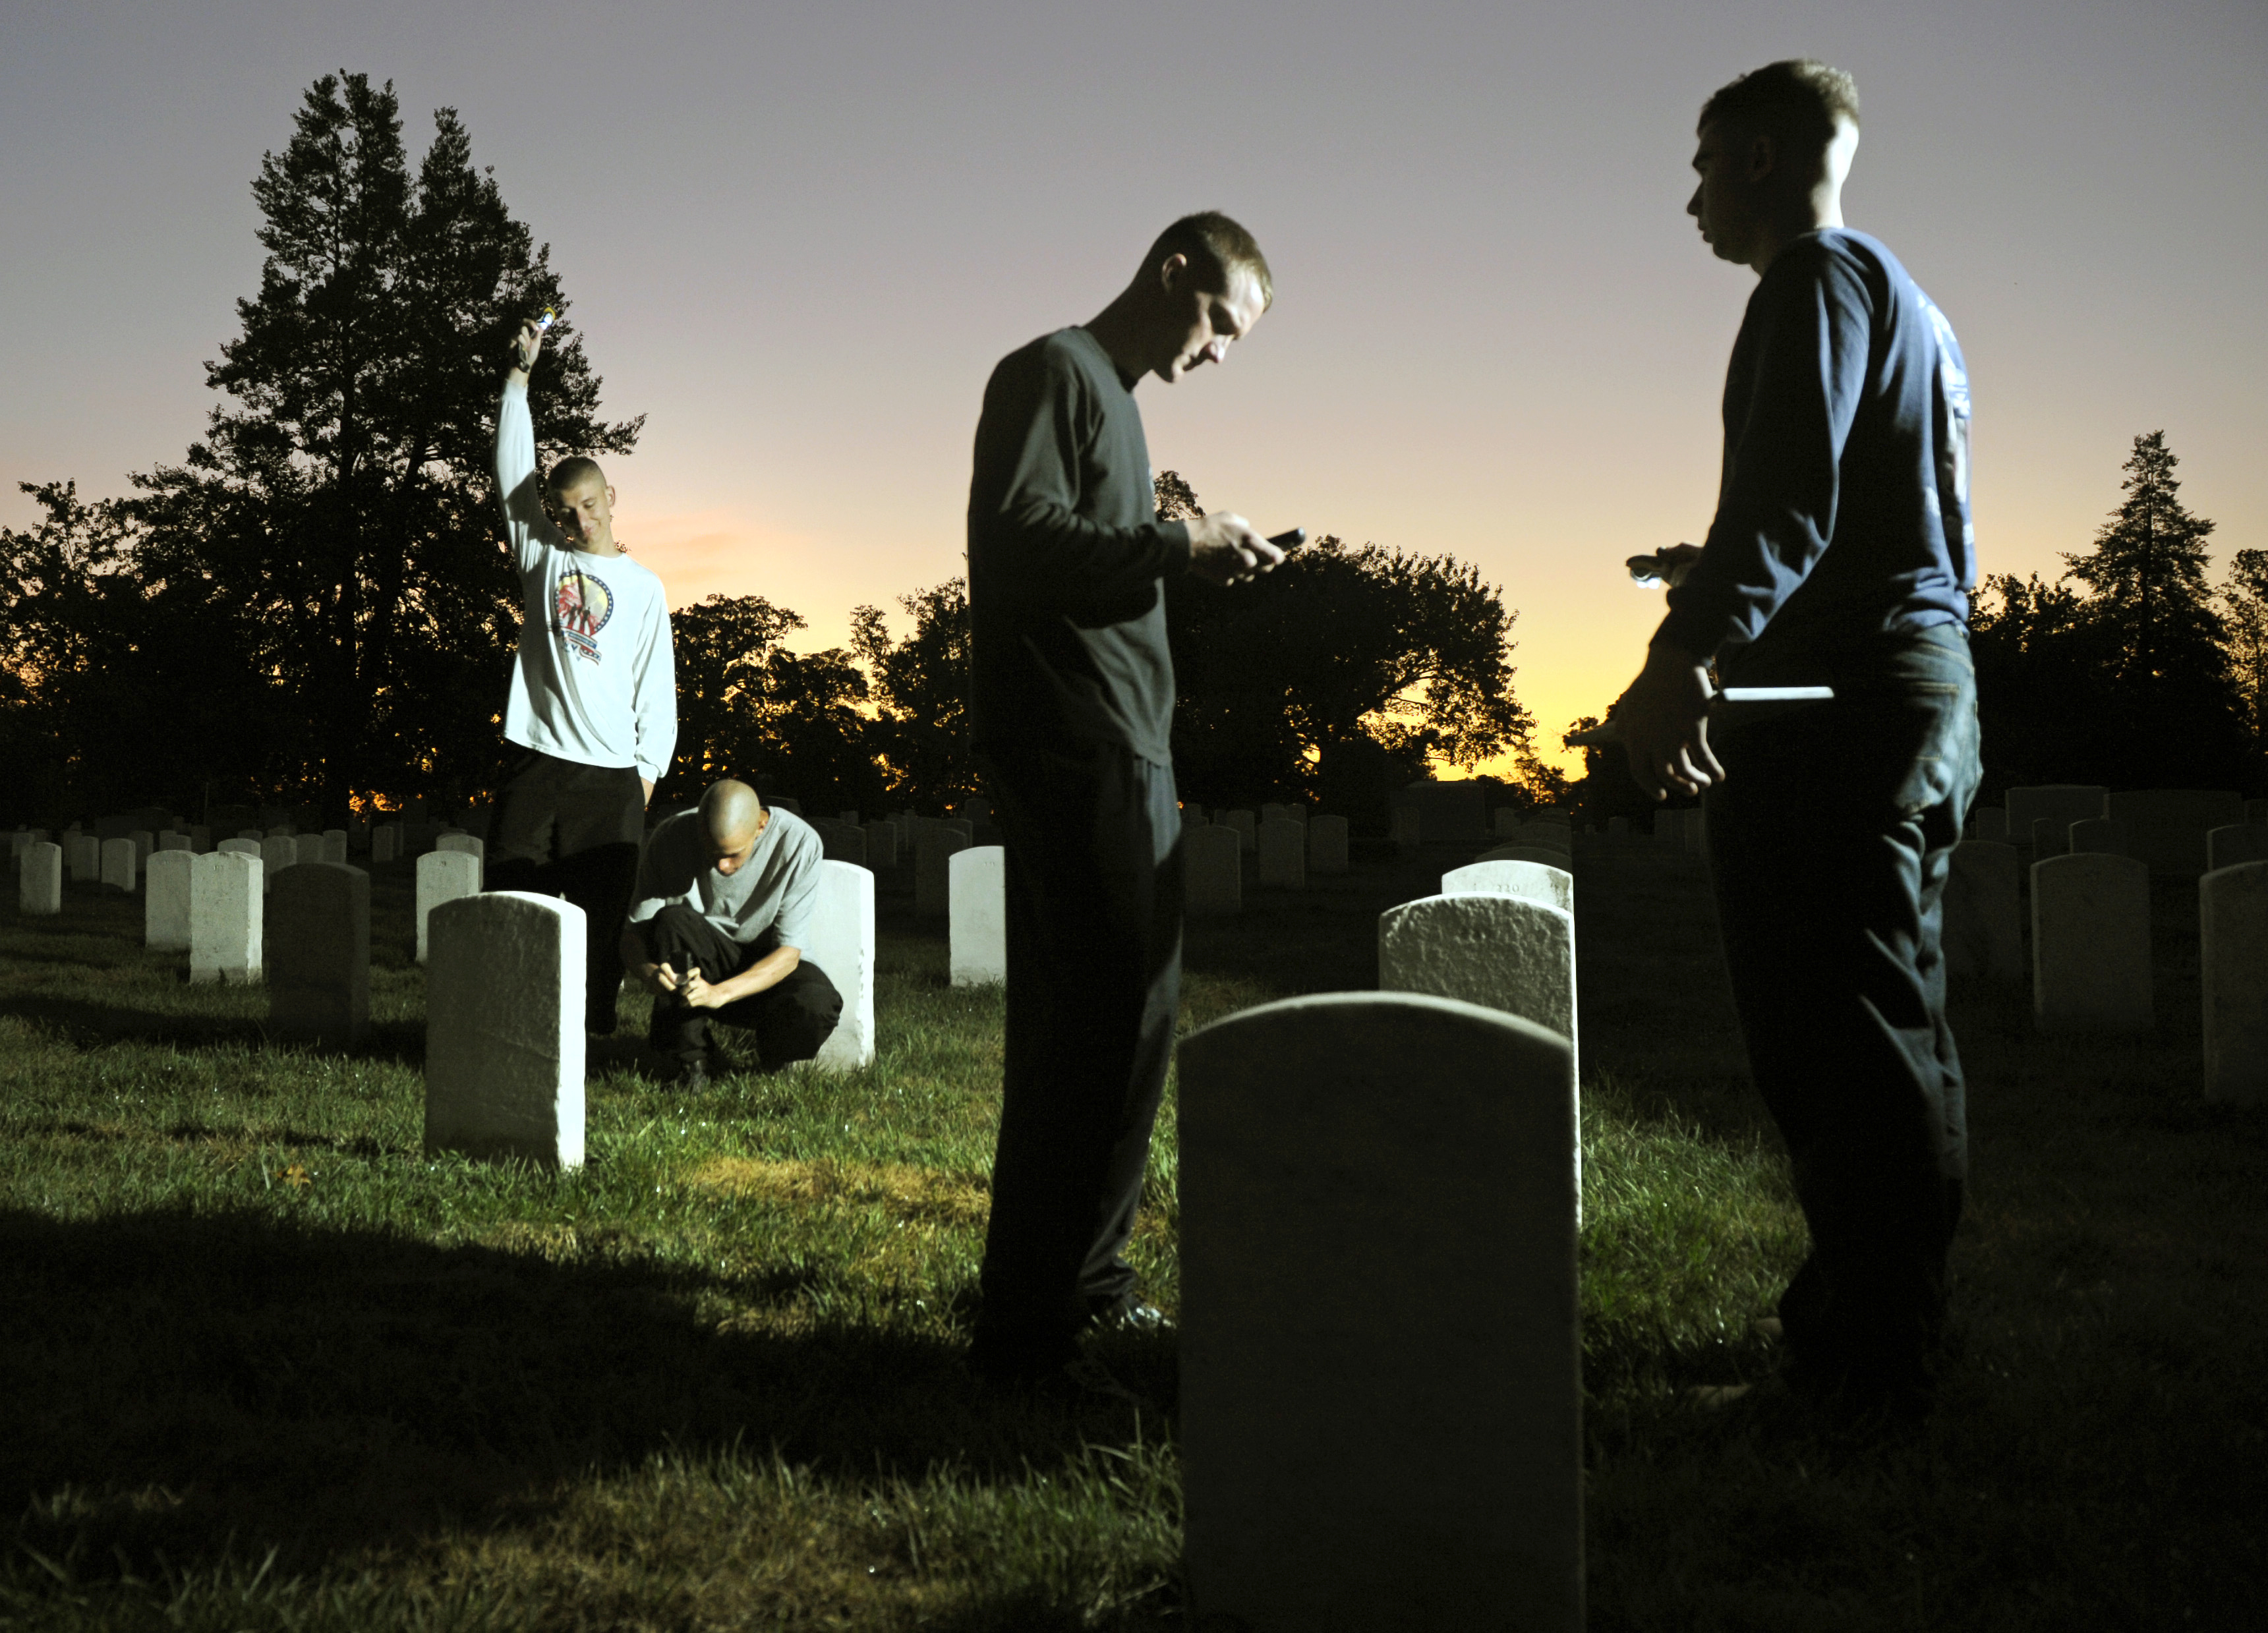 As the sun rises, soldiers from the Army Old Guard photograph headstones in Section 15 of Arlington National Cemetery as part of Task Force Christman to photograph and catalog more than 219,00 grave markers and the front of more than 43,000 sets of cremated remains at Arlington National Cemetery in Va., Aug. 24, 2011.